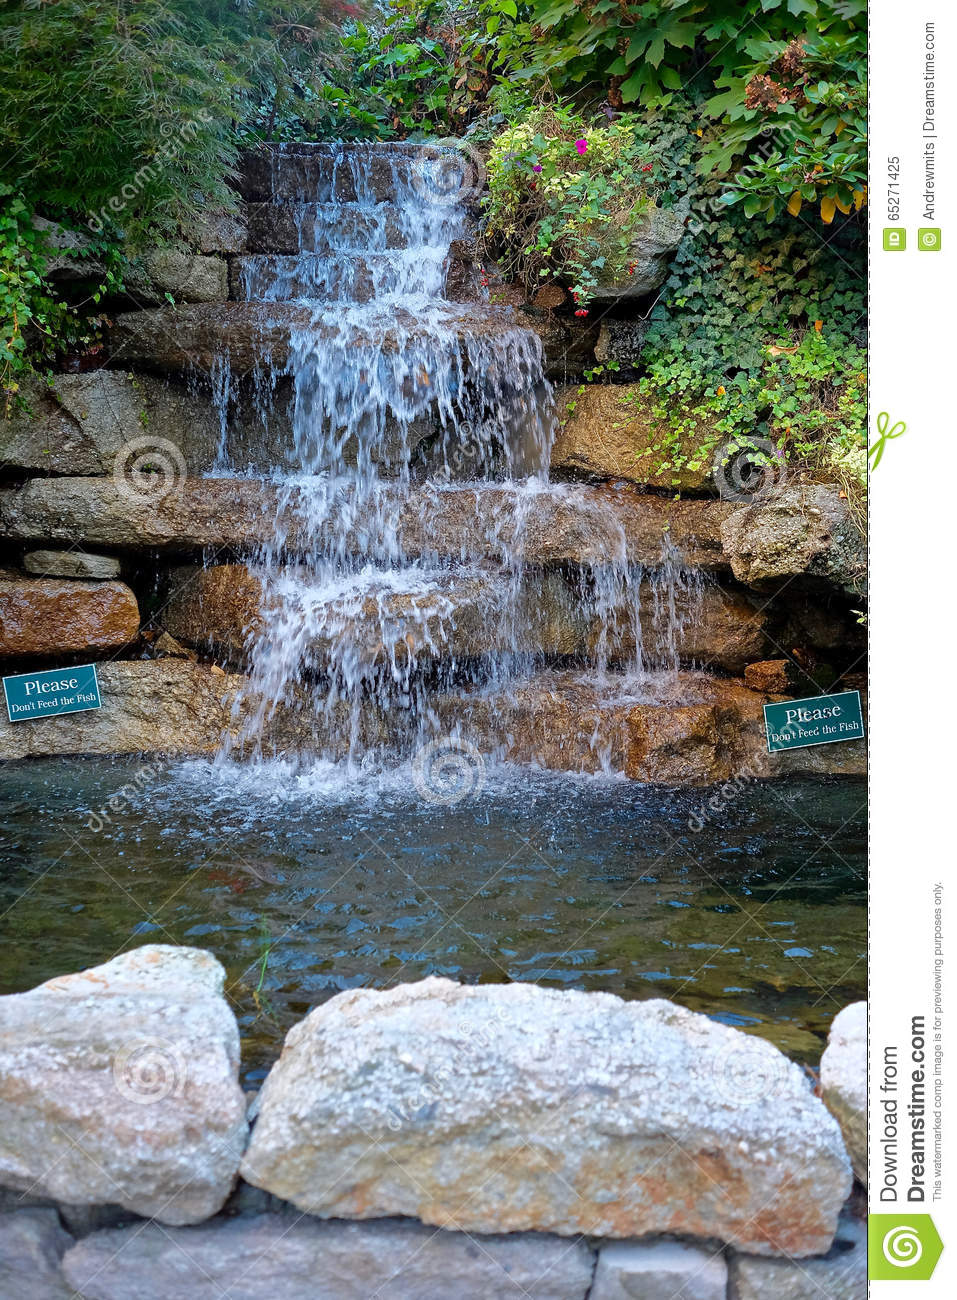 Waterfall and pond landscaping stock photo image 65271425 for Setting up a garden pond